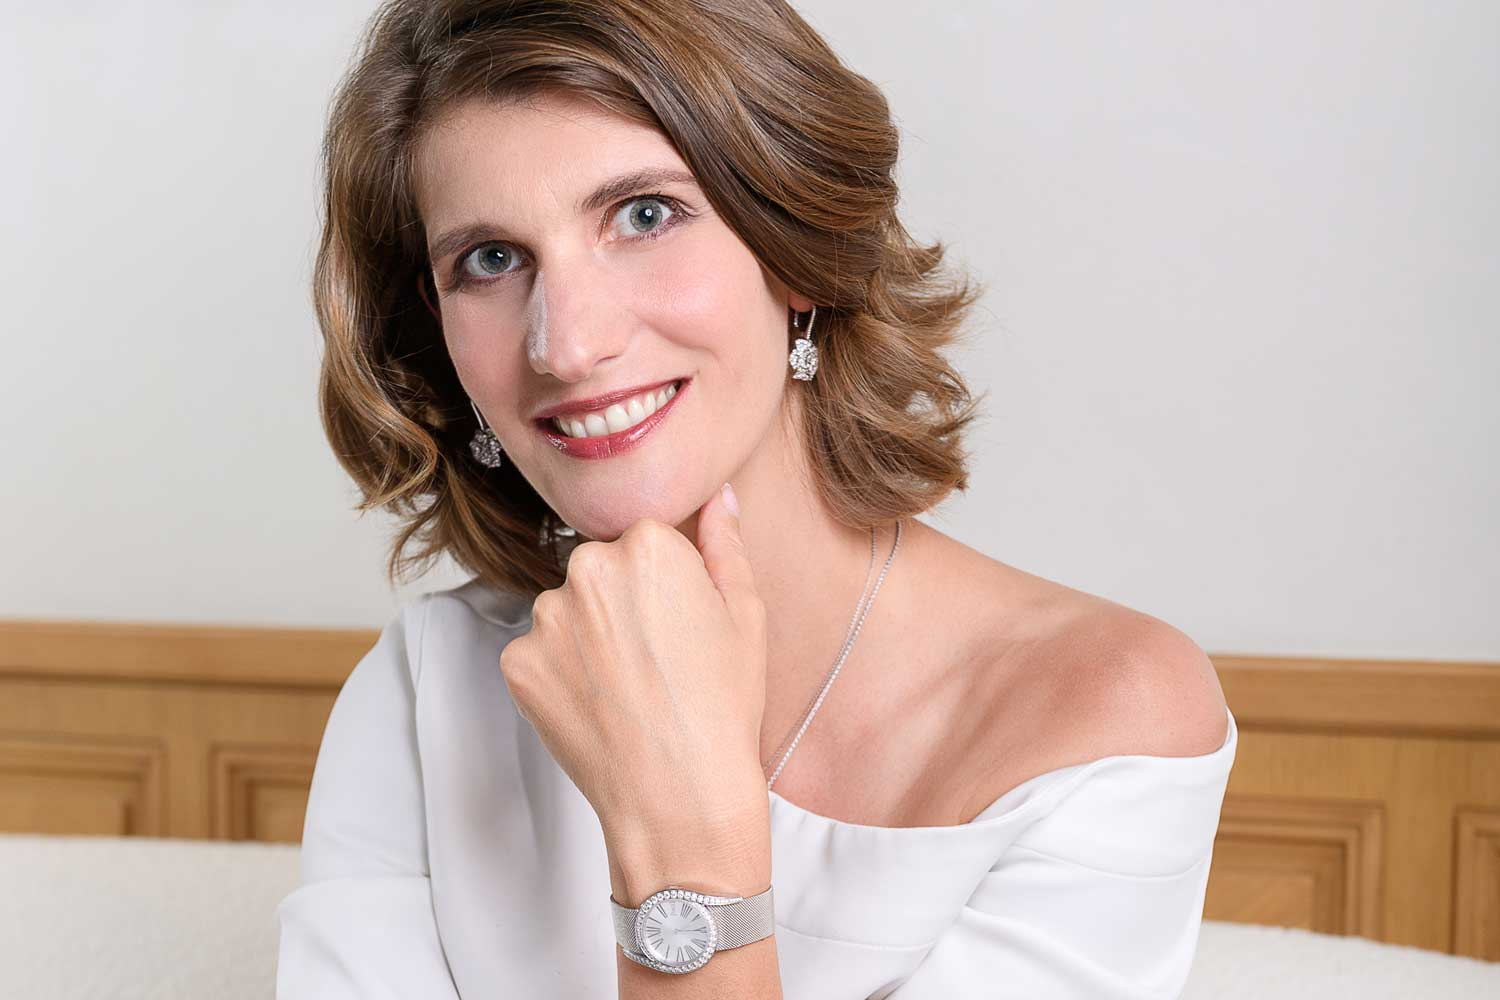 Petronille de Parseval, Piaget's managing director of Australia and South-east Asia